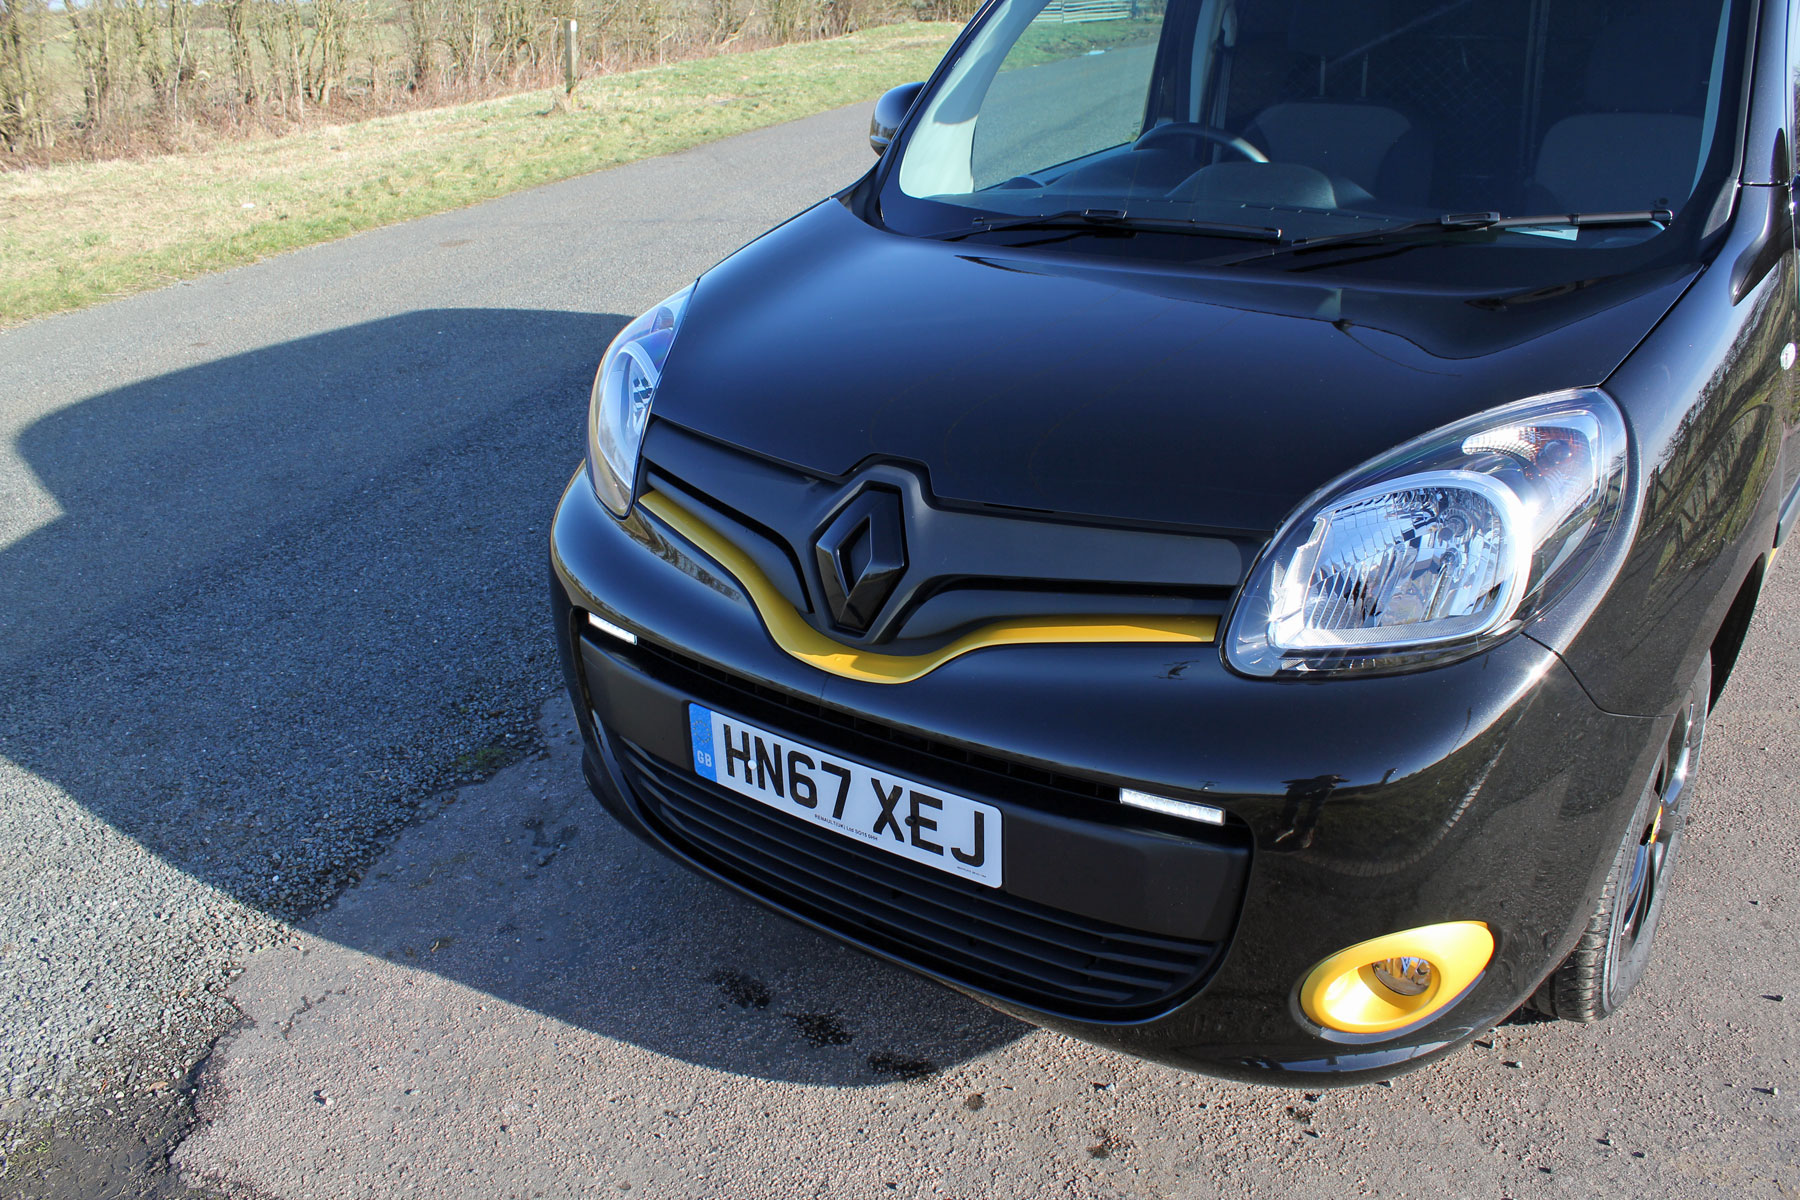 Renault Kangoo 15 Dci 110ps Ml19 Formula Edition Van Euro6 Auto Central Locking Wiring Diagram Review Special Grille And Yellow Trimmings